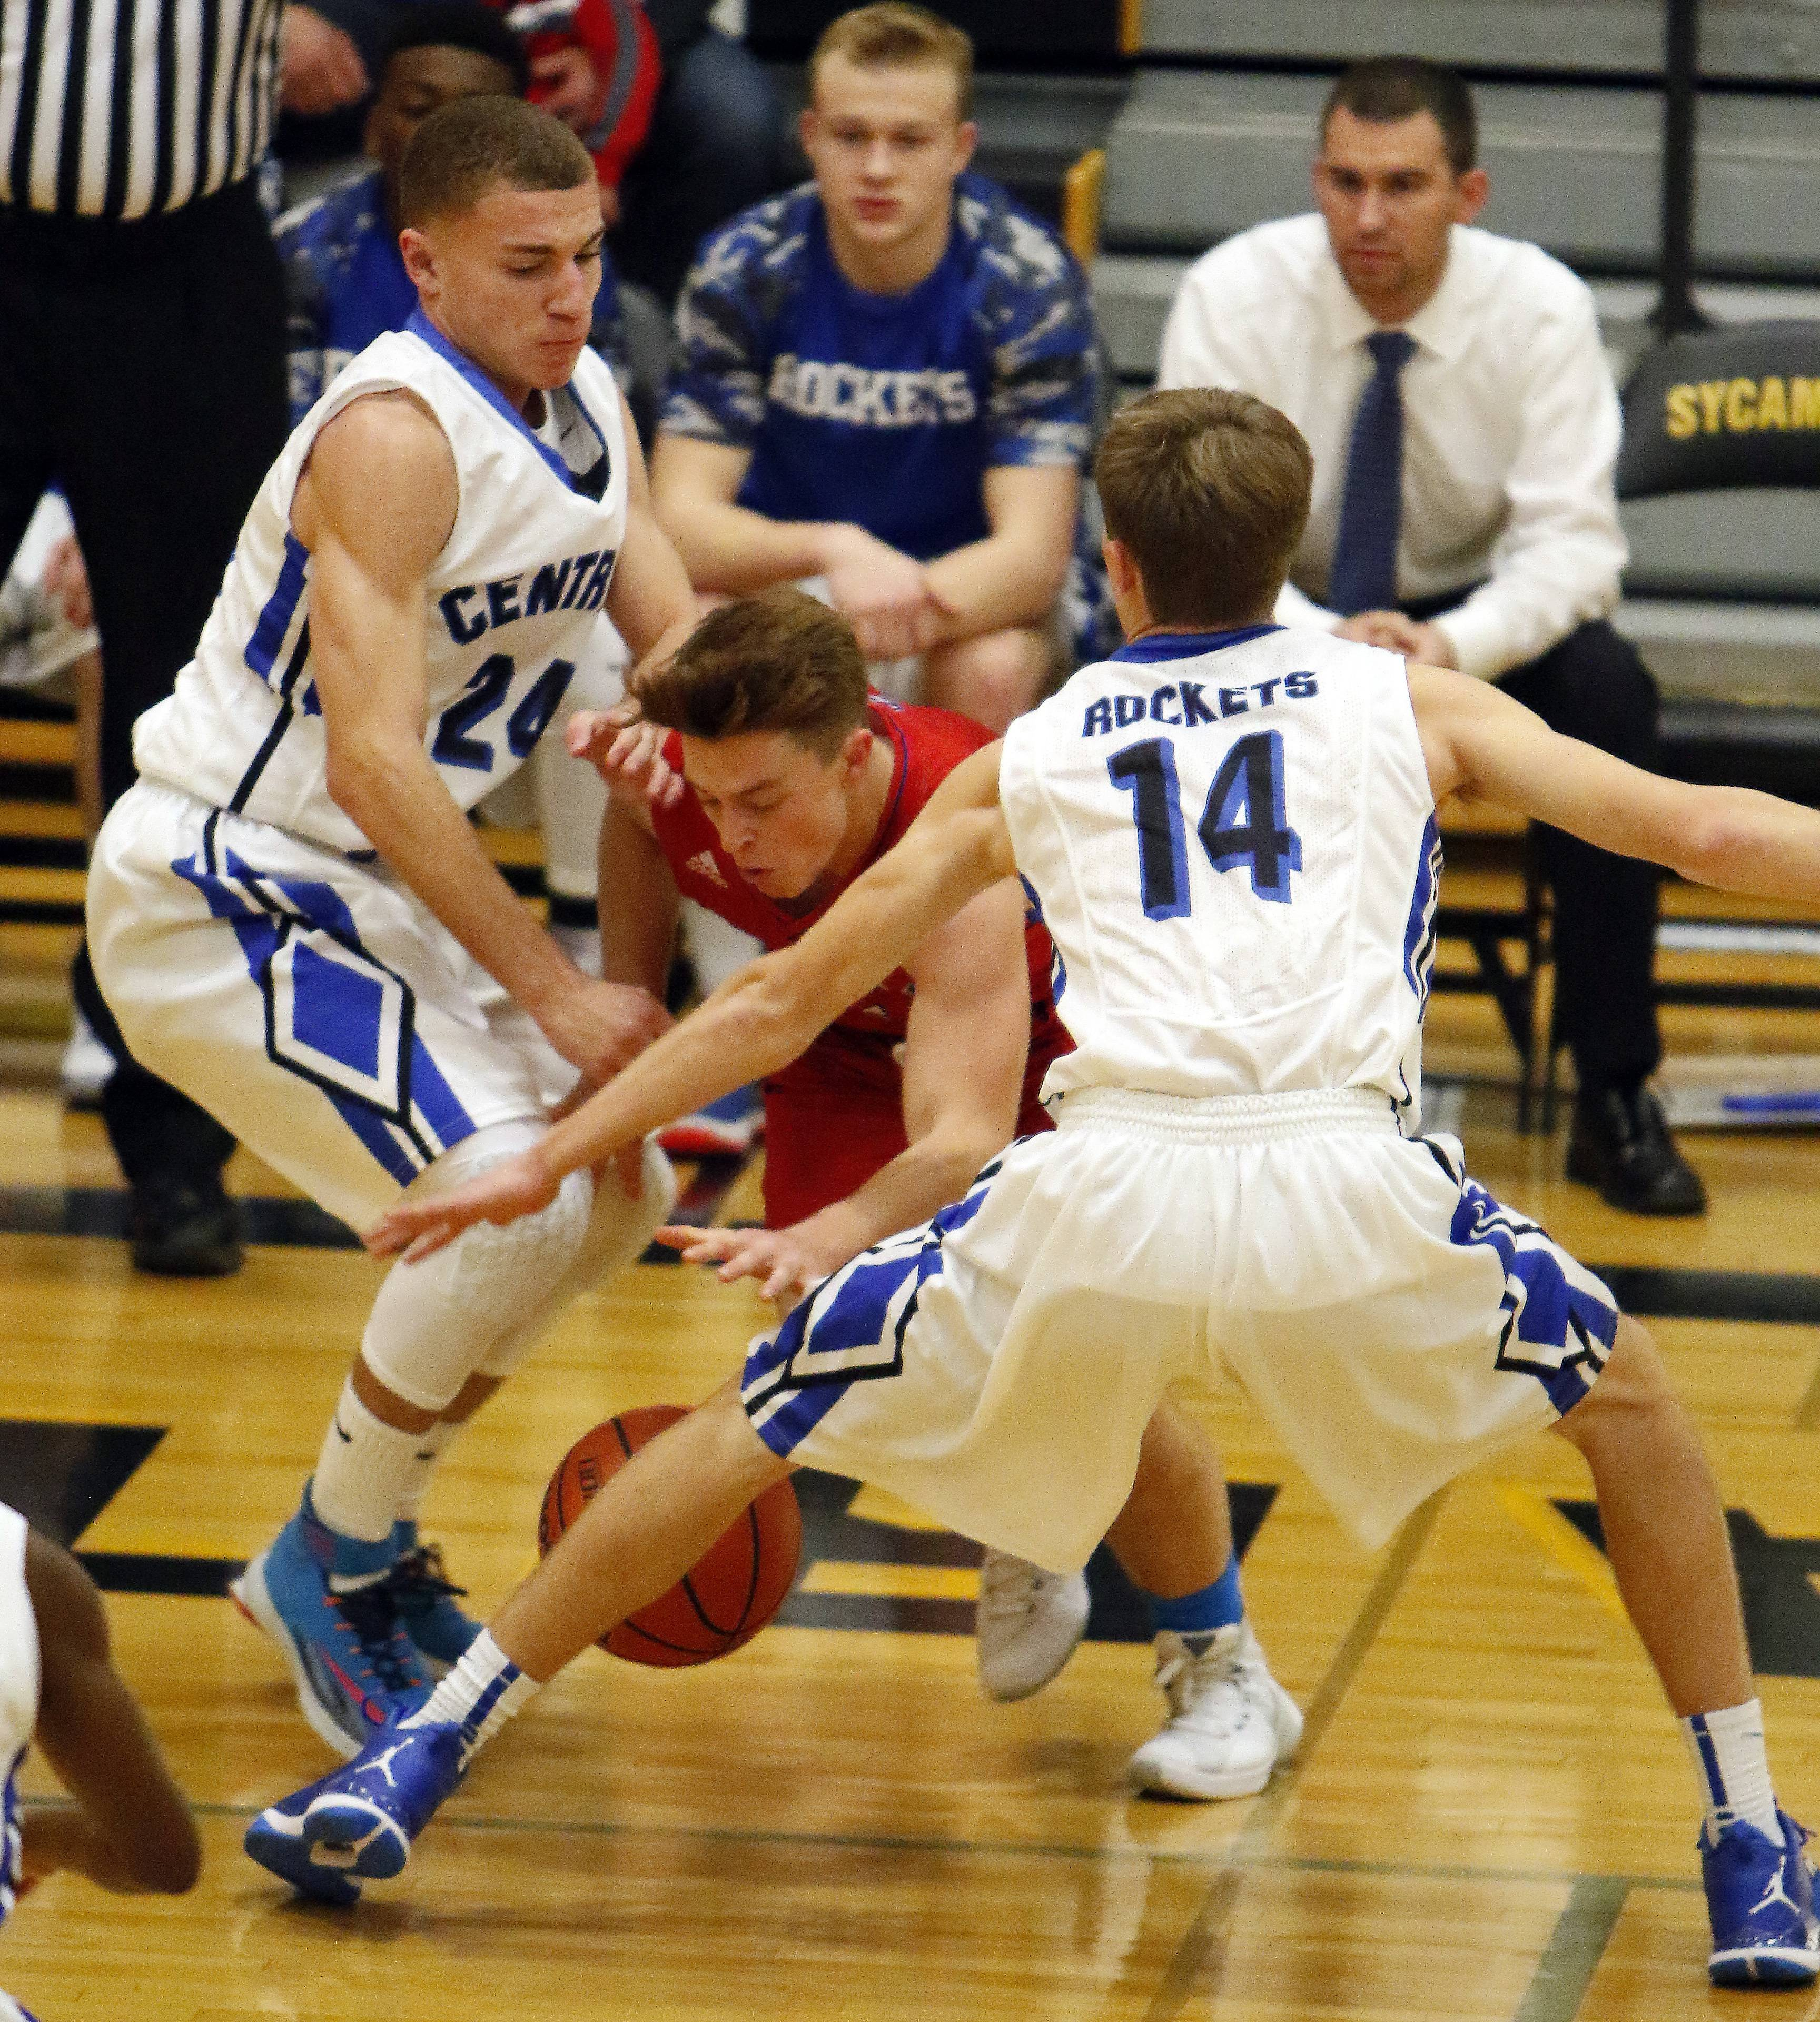 Dundee Crown guard Nicholas Shydlowski (3) tries to squeeze between Burlington Central guards Ethan Mayfield (24) and Zach Schutta (14) during boys basketball at Sycamore Wednesday.